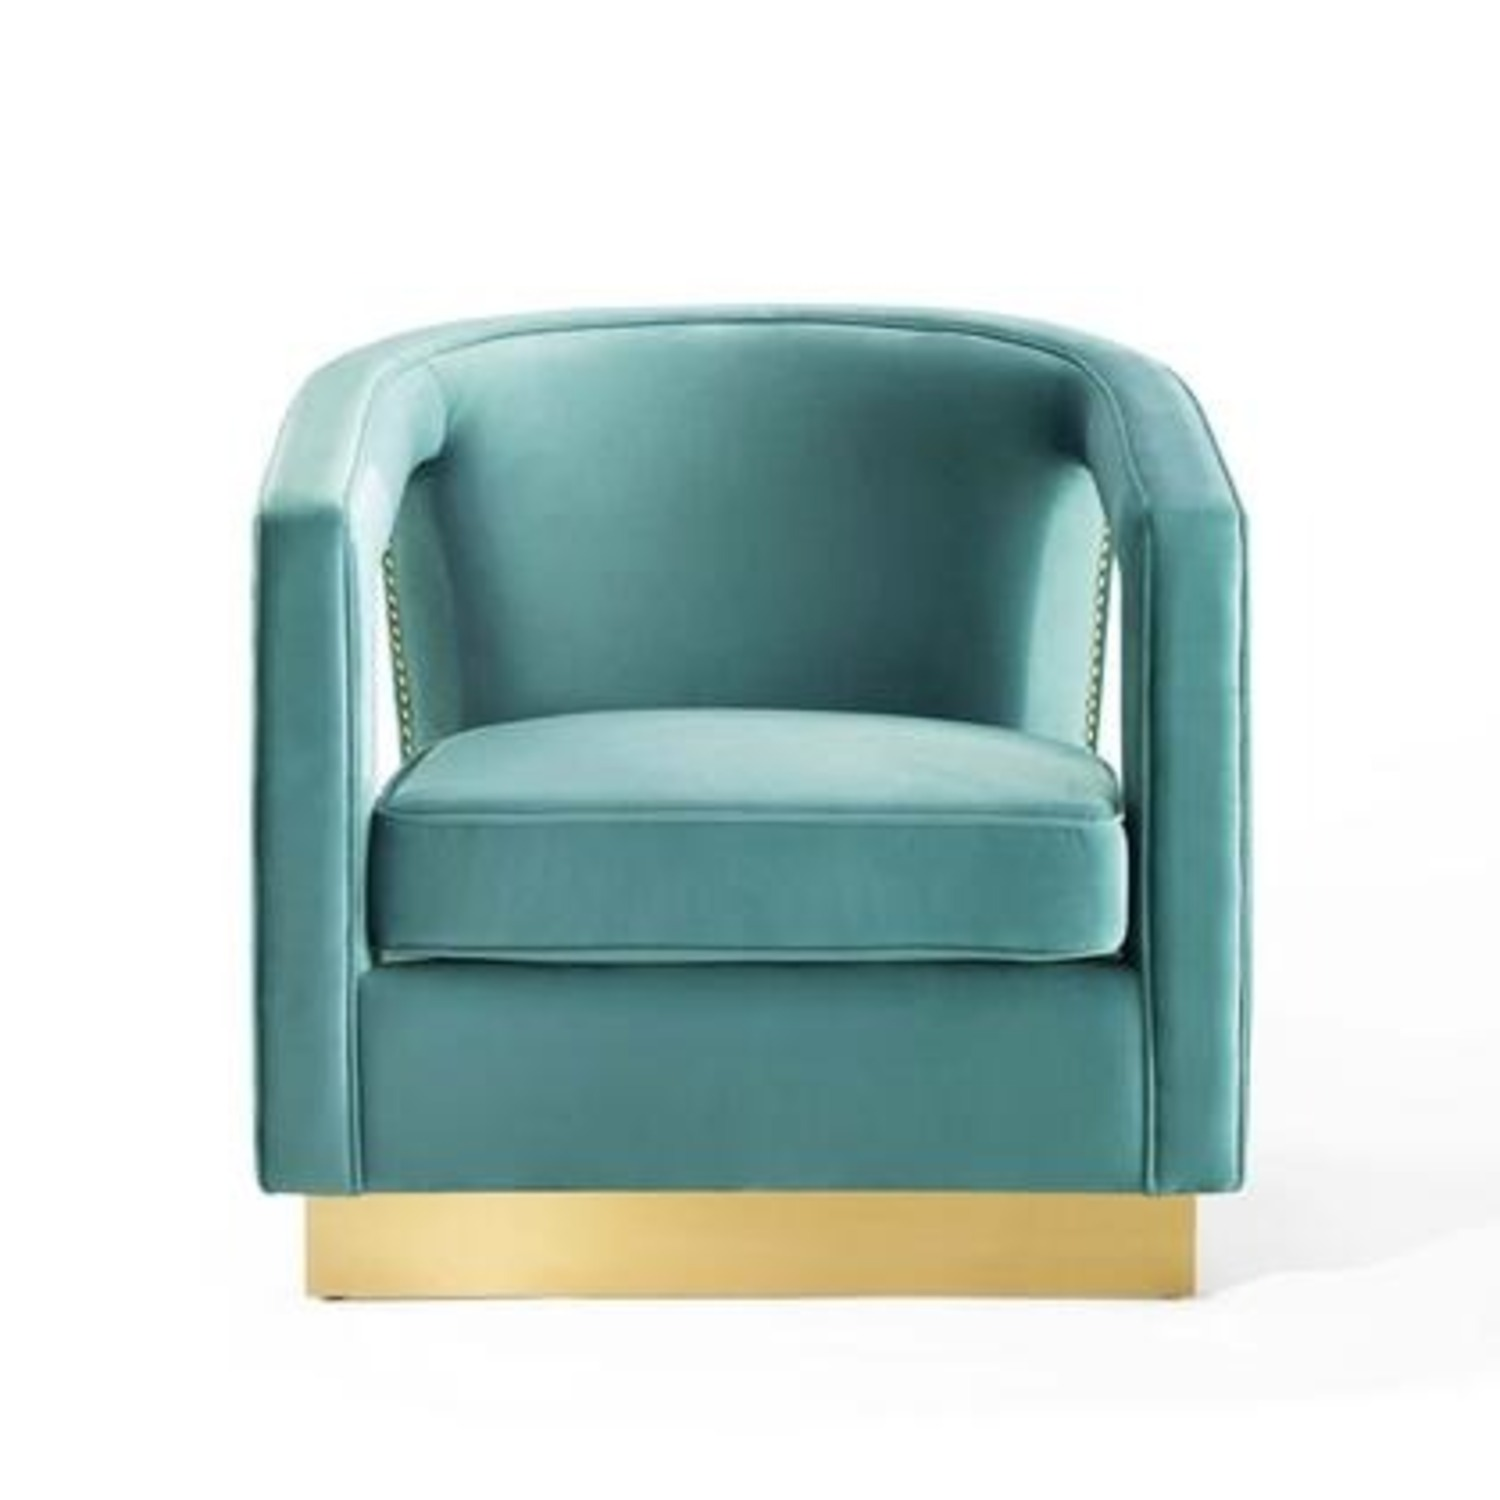 Glam Deco Style Armchair In Mint Velvet Fabric - image-3